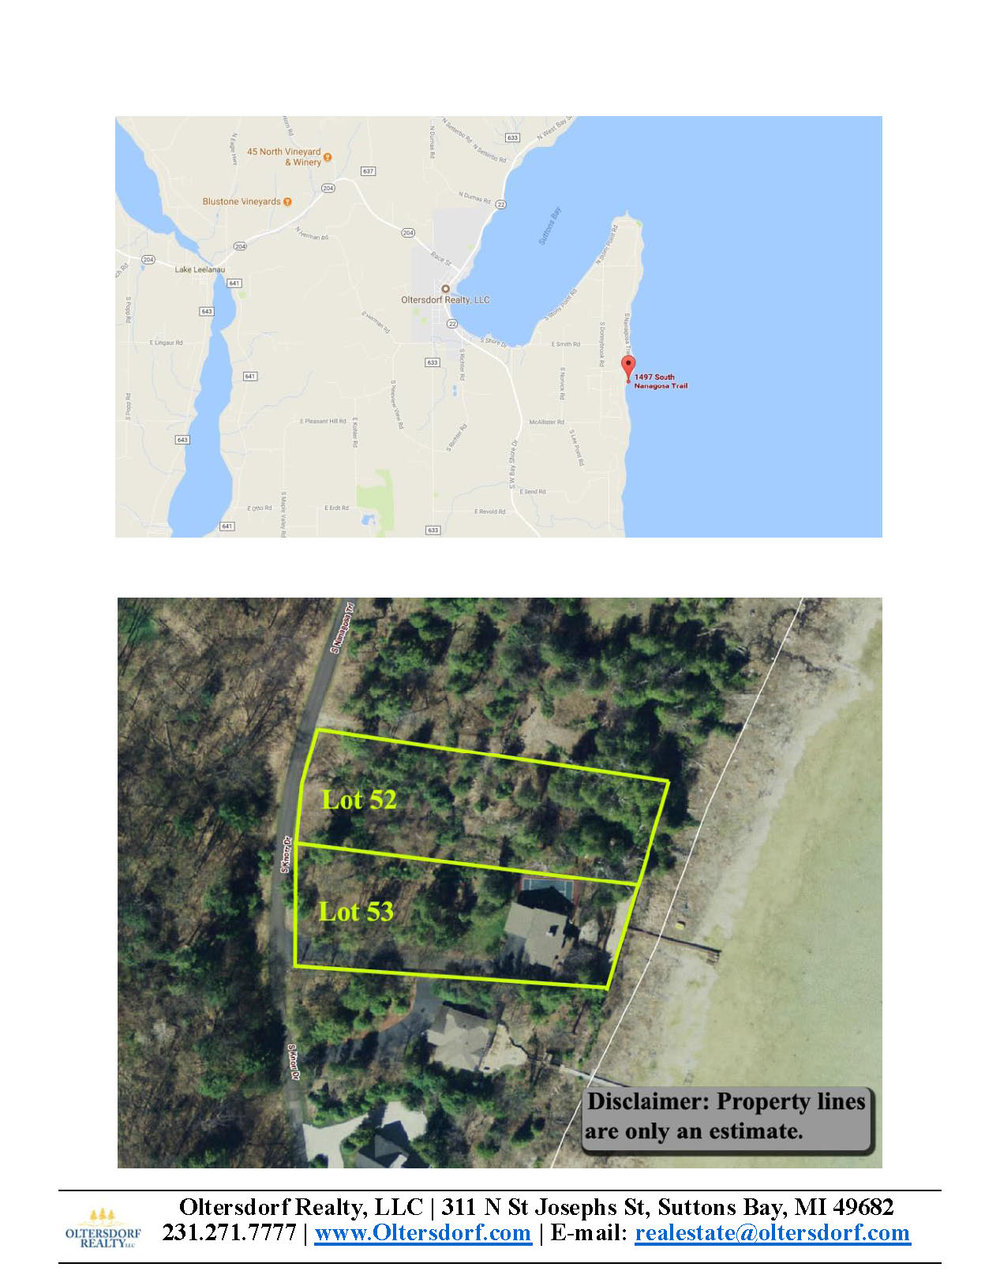 1497 S Nanagosa Trail, Suttons Bay, MI – Home with 200' on West Grand Traverse Bay Full Marketing Packet (10).jpg